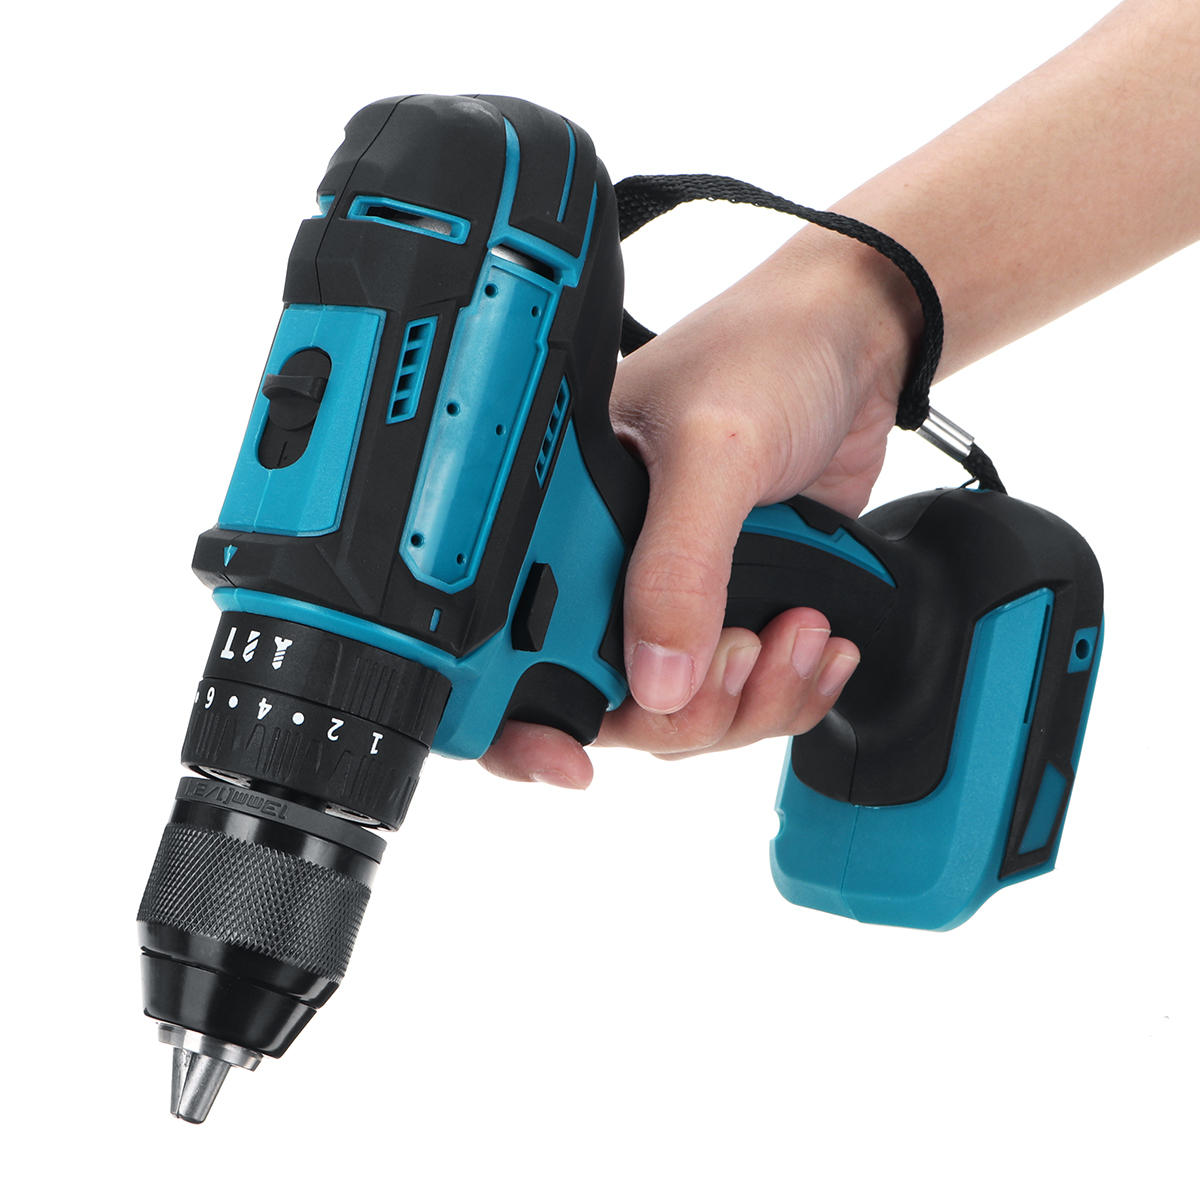 10mm Chuck Brushless Impact Drill 350N.m Cordless Electric Drill For Makita 18V Battery 4000RPM LED Light Power Drills - 8